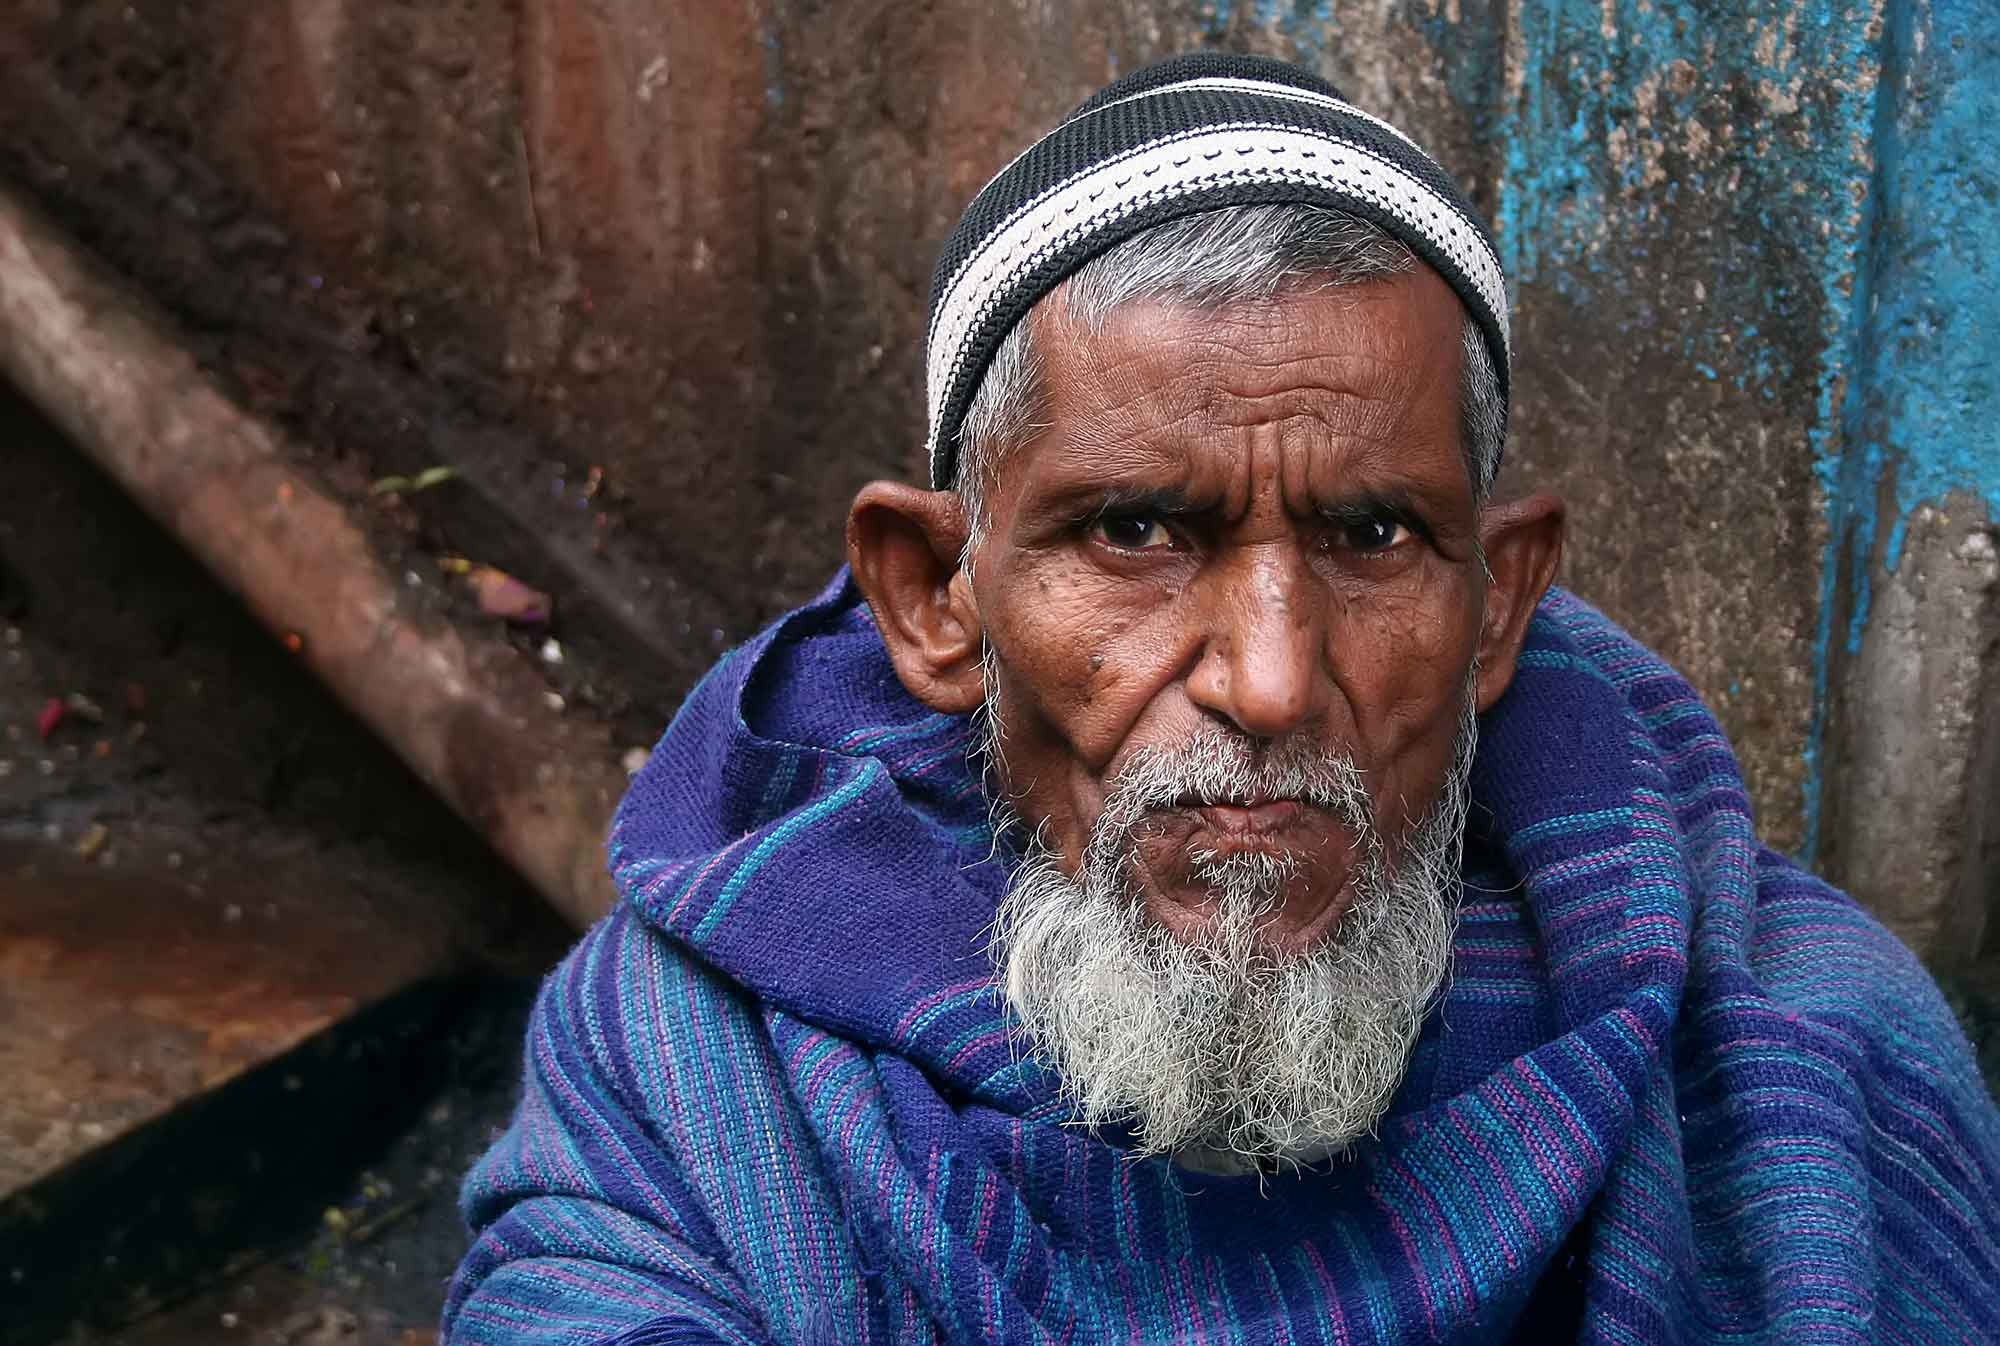 portrait-old-man-darjeeling-india